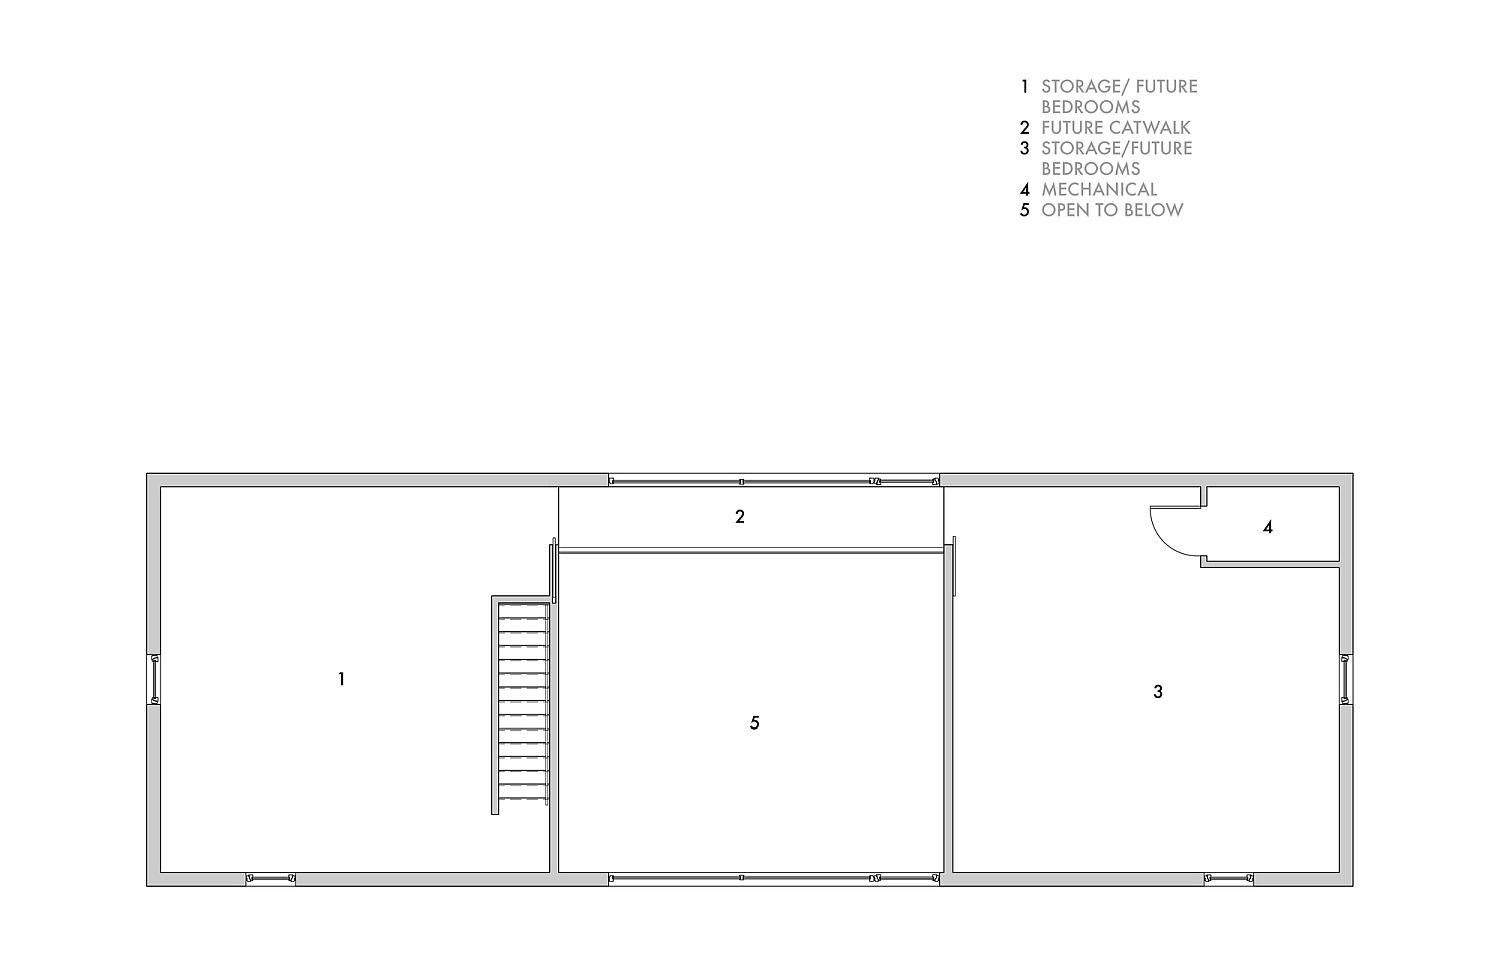 Upper level floor plan of the energy-efficient home in New York